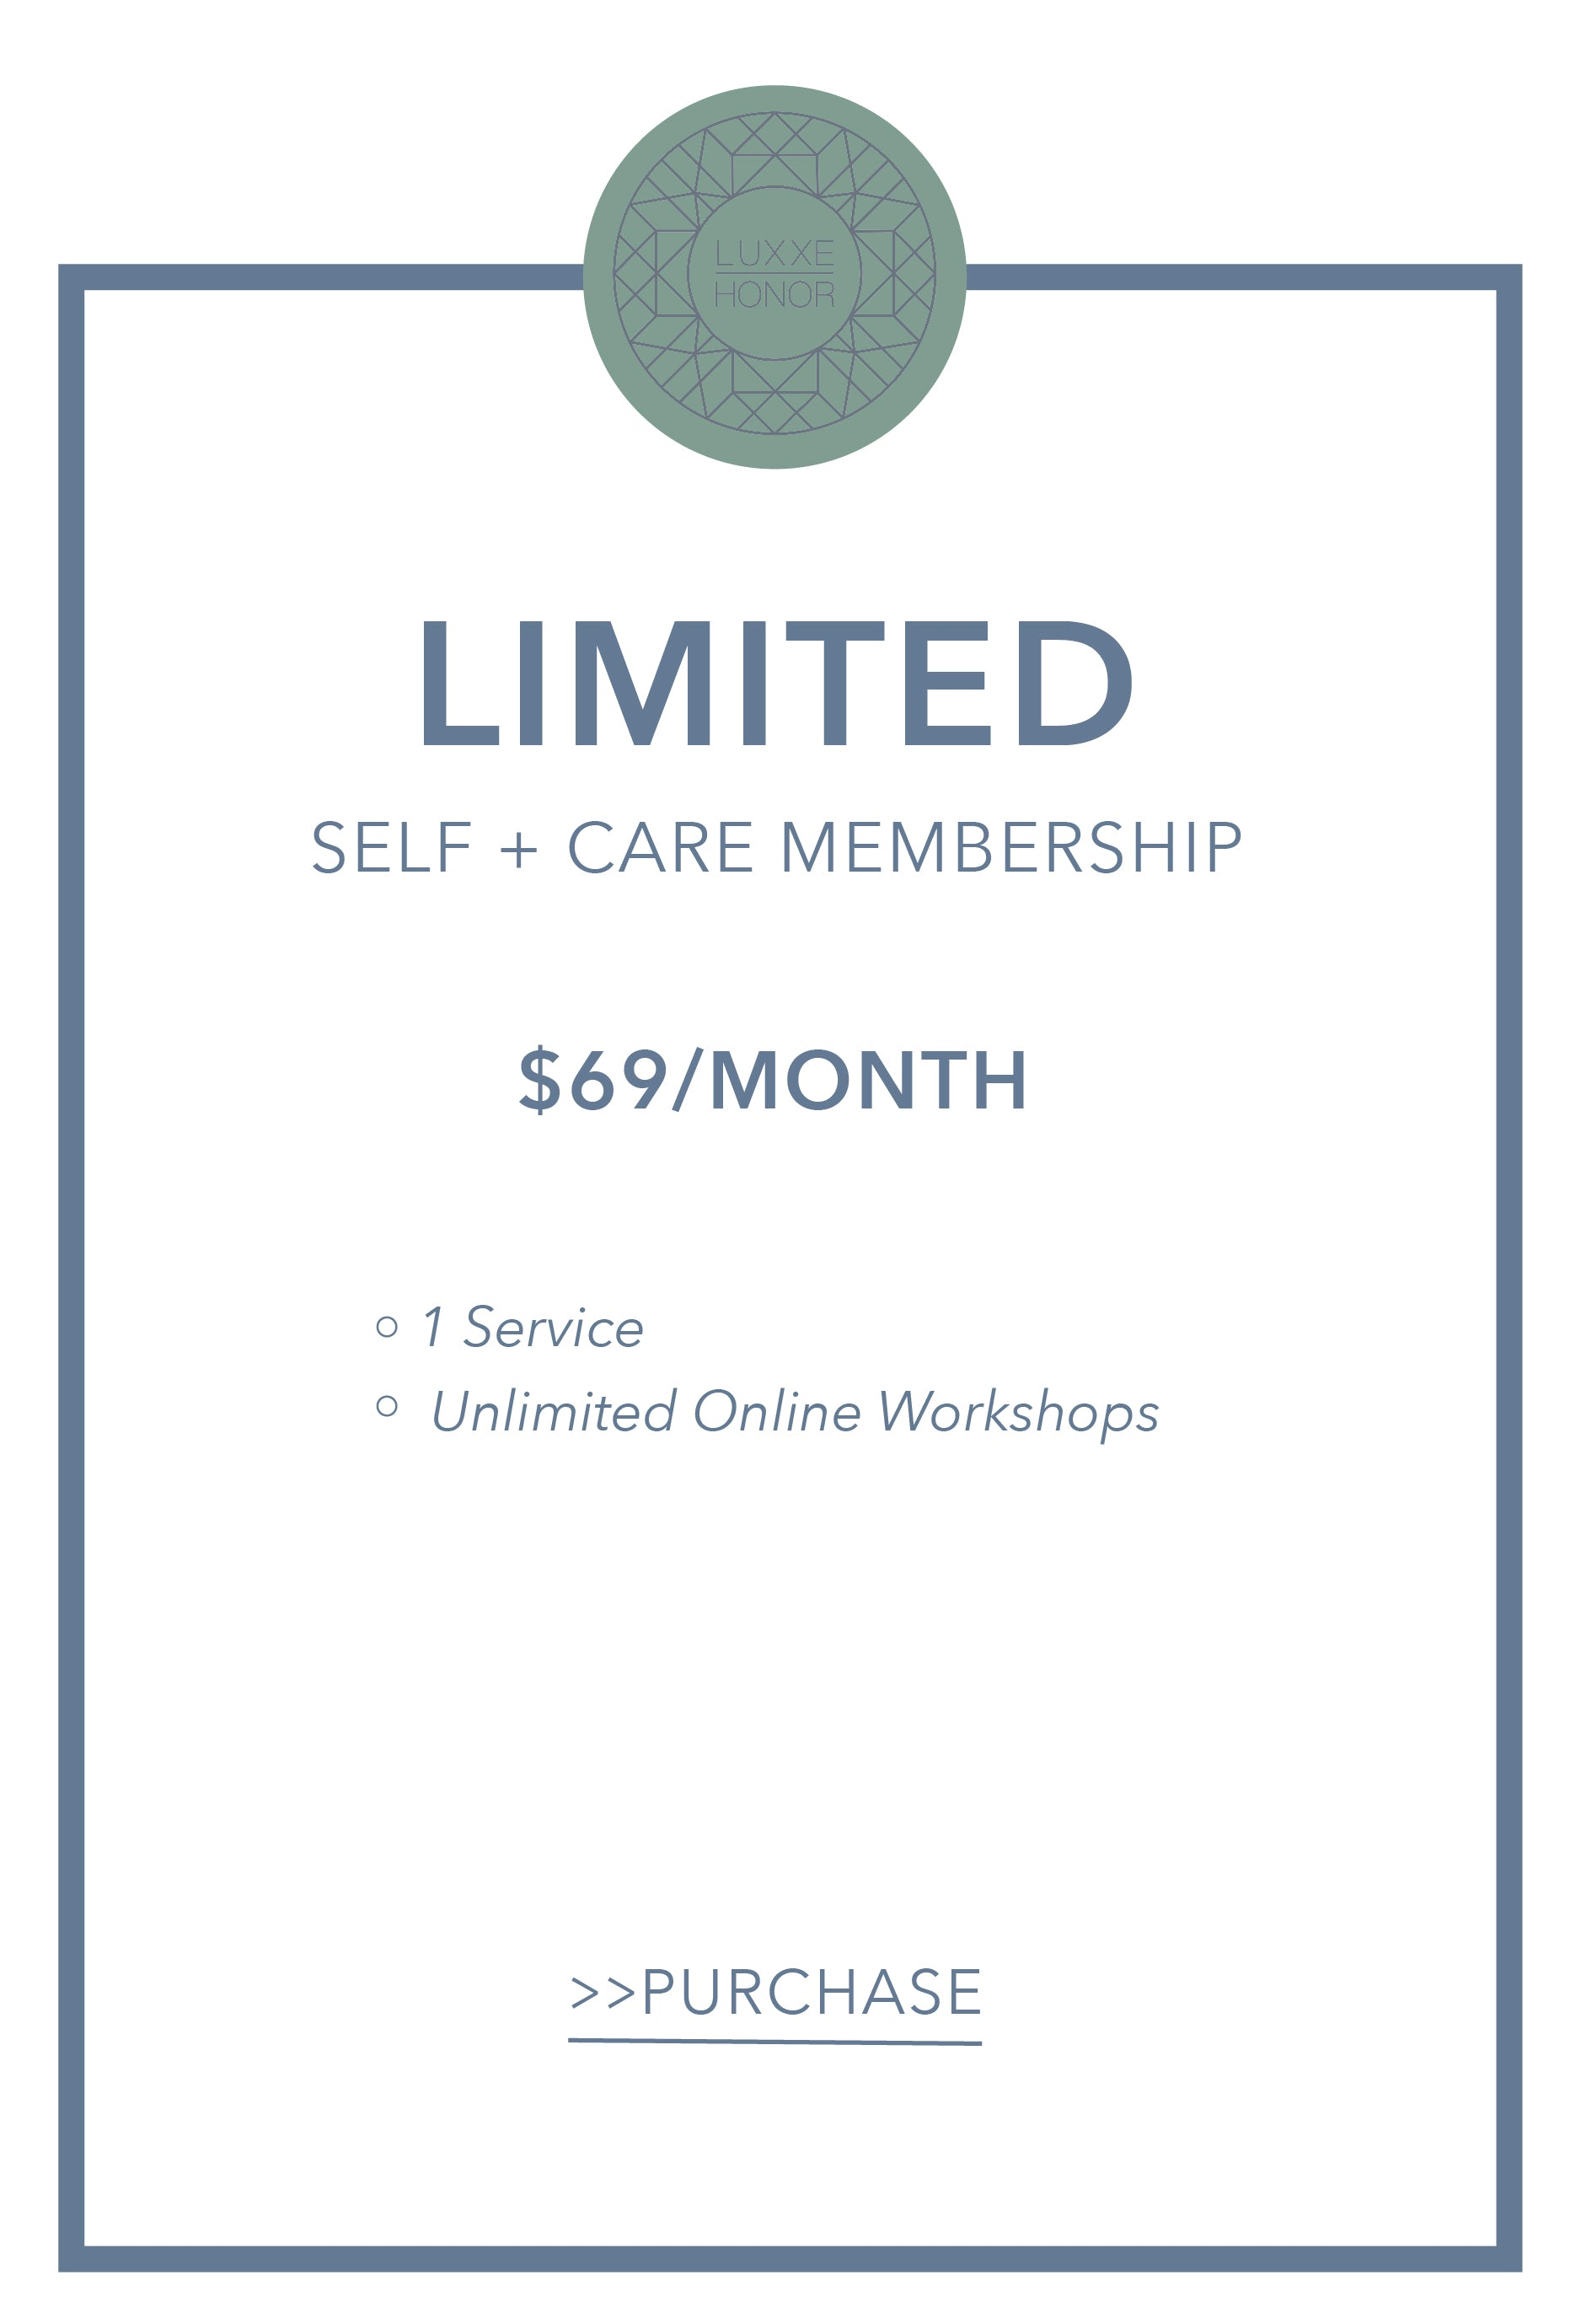 Luxxe Honor Limited Self + Care Membership